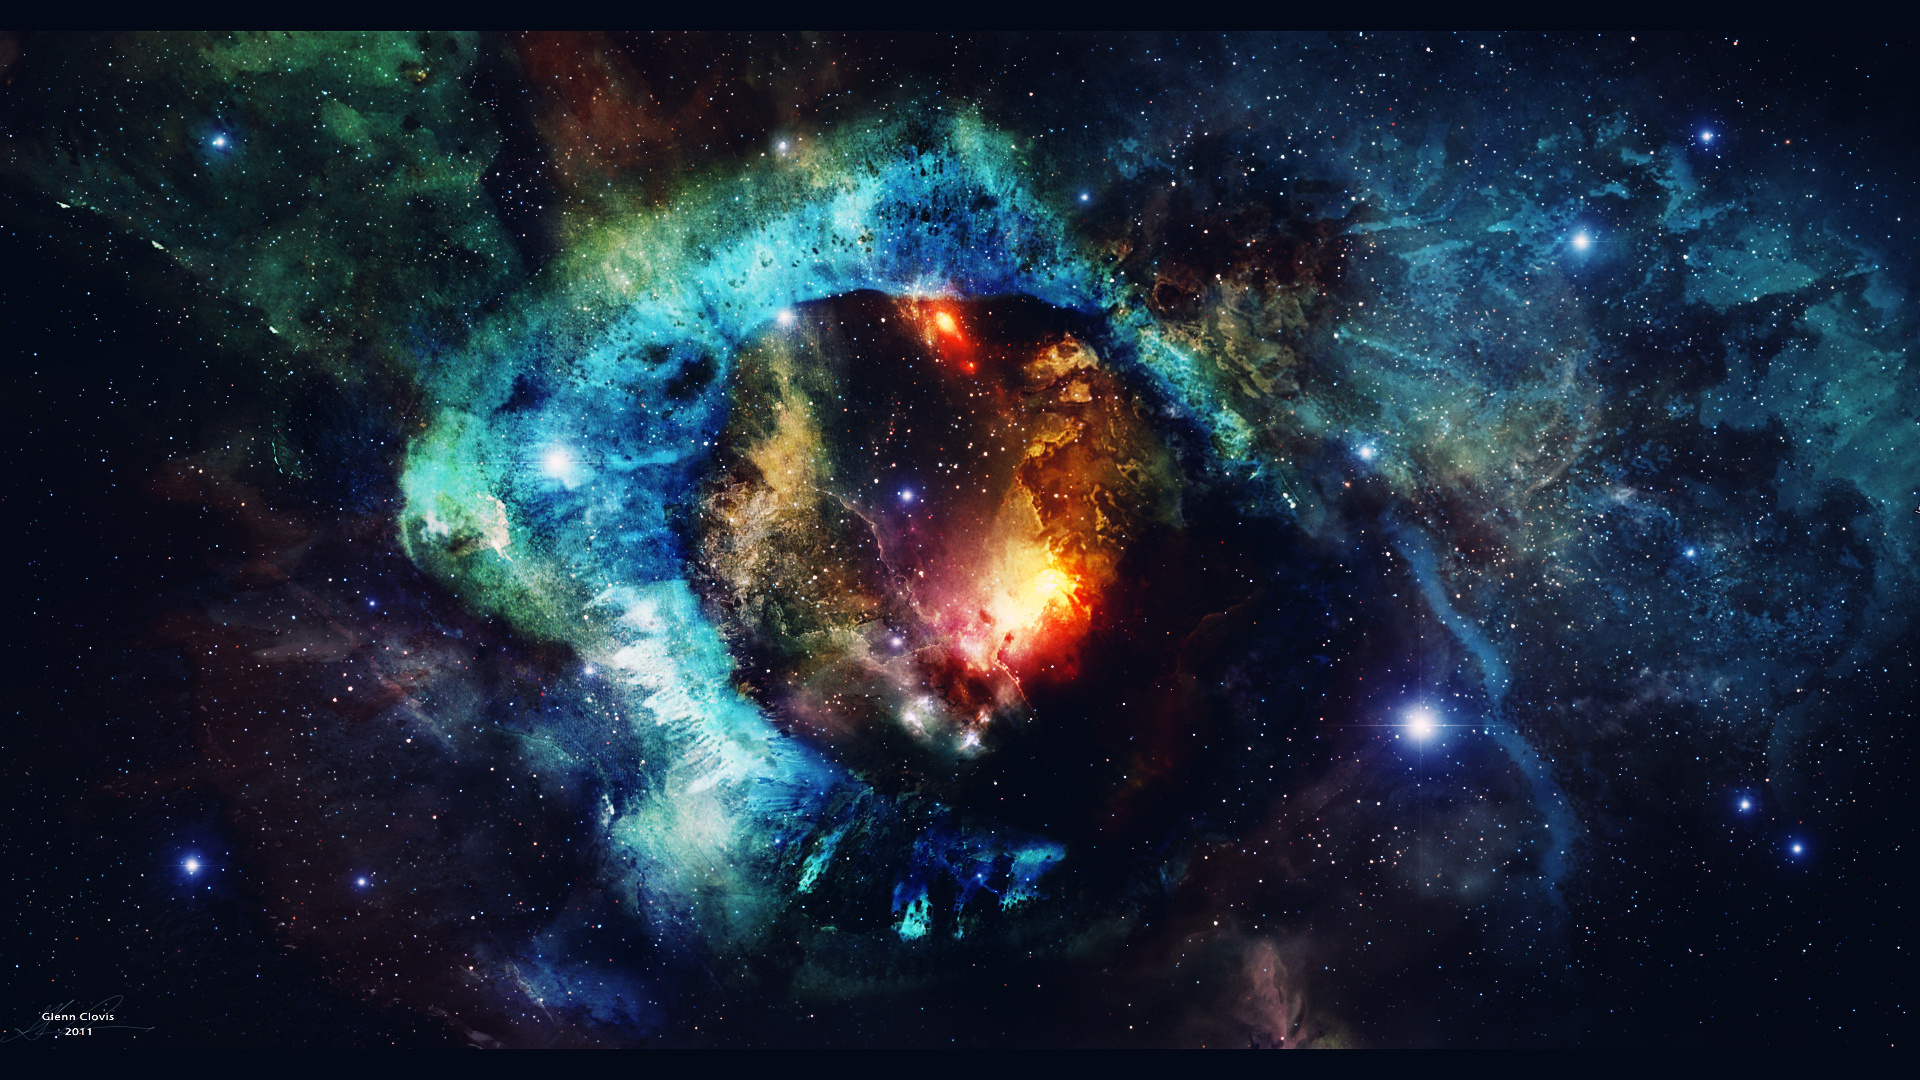 universe hd images - HD1440×900